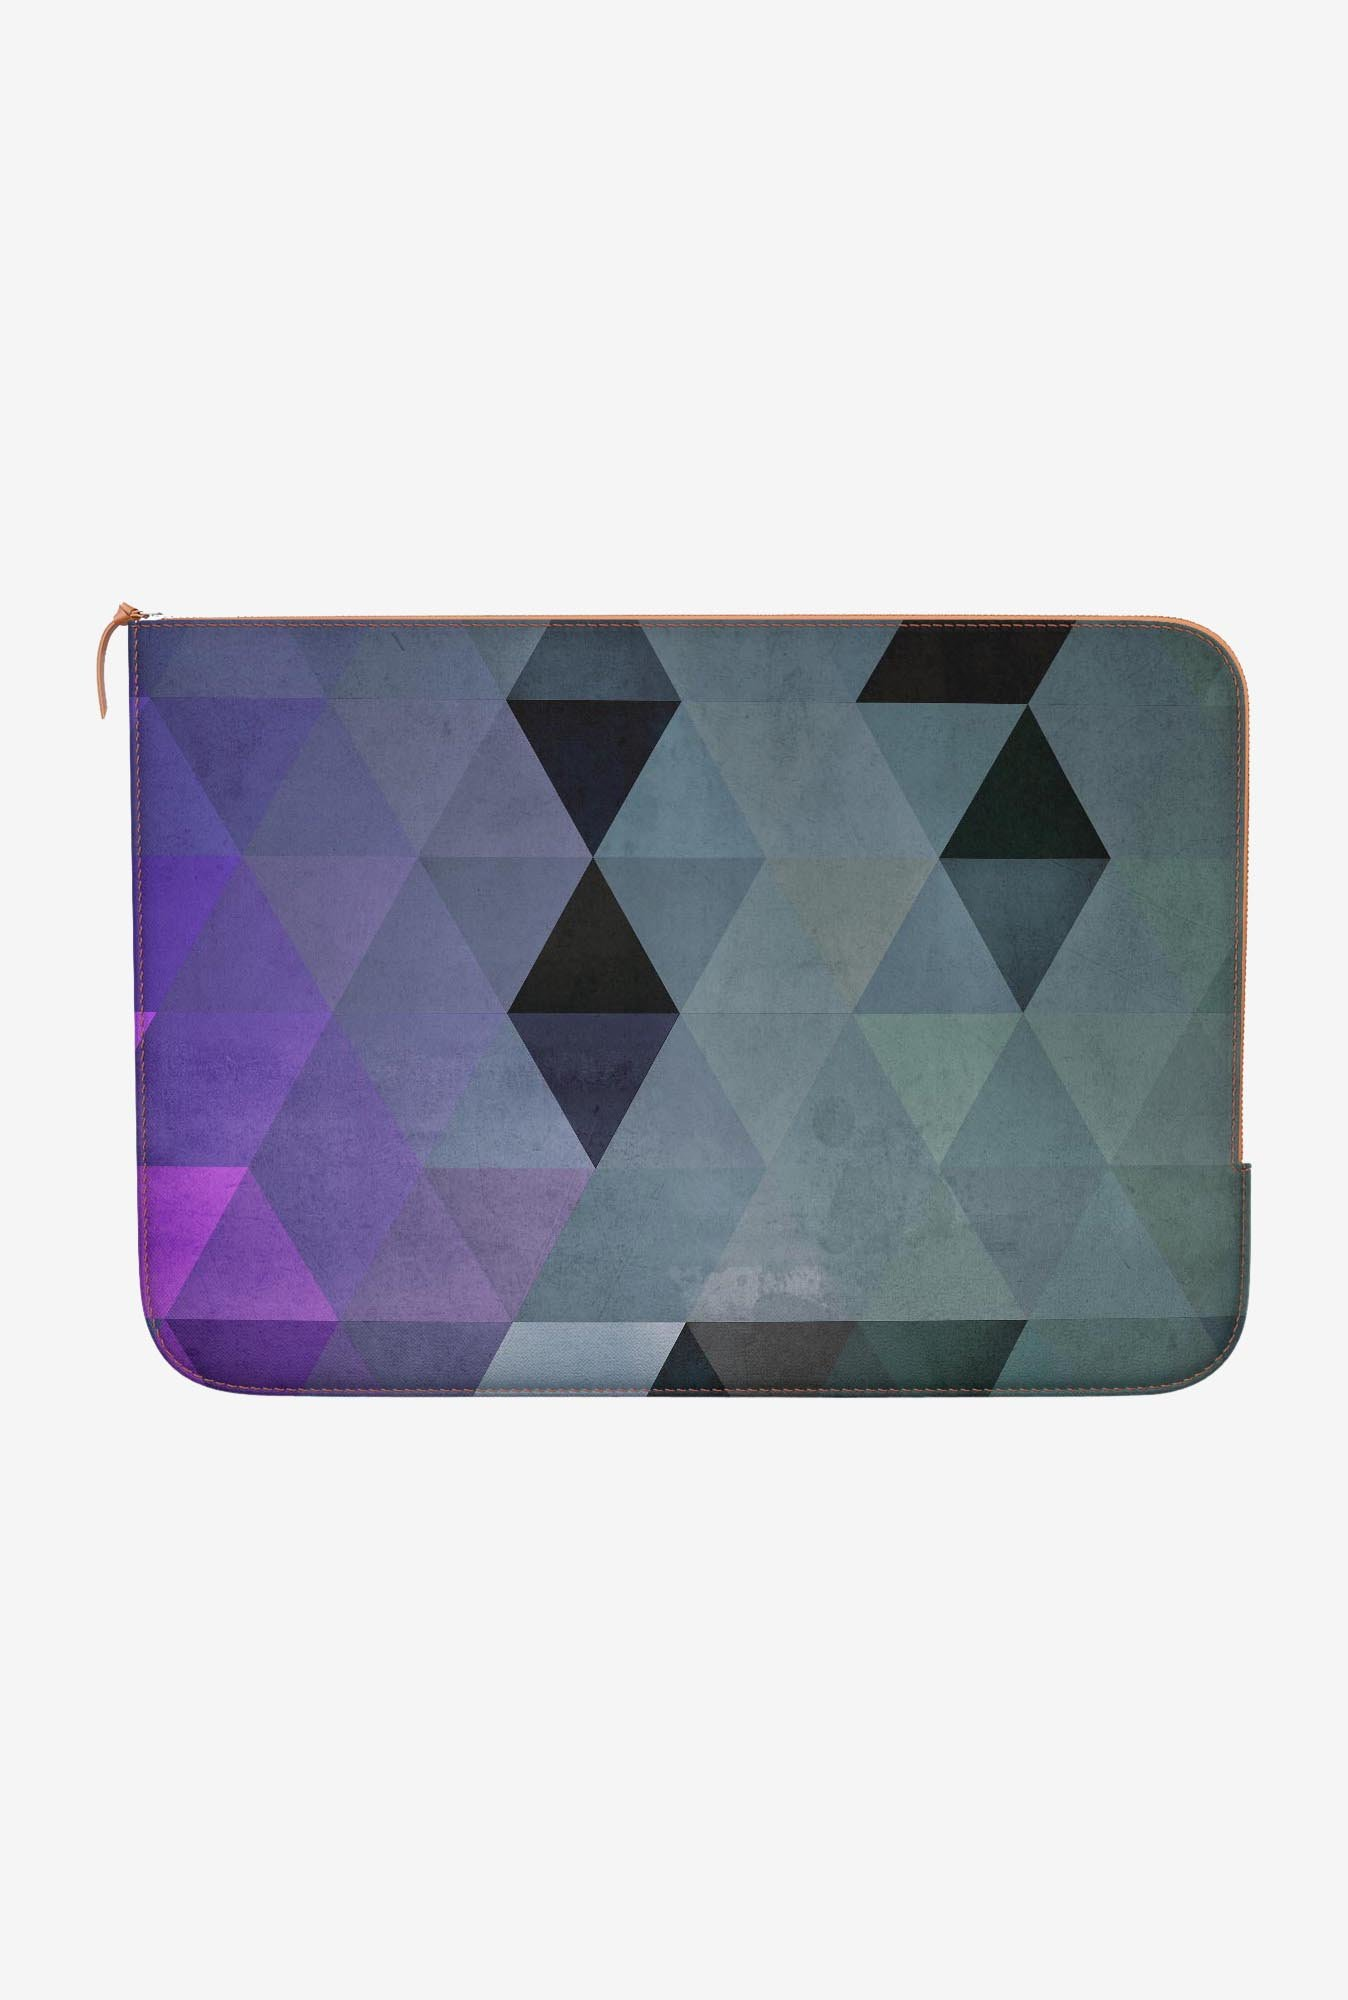 DailyObjects vysse MacBook Air 11 Zippered Sleeve